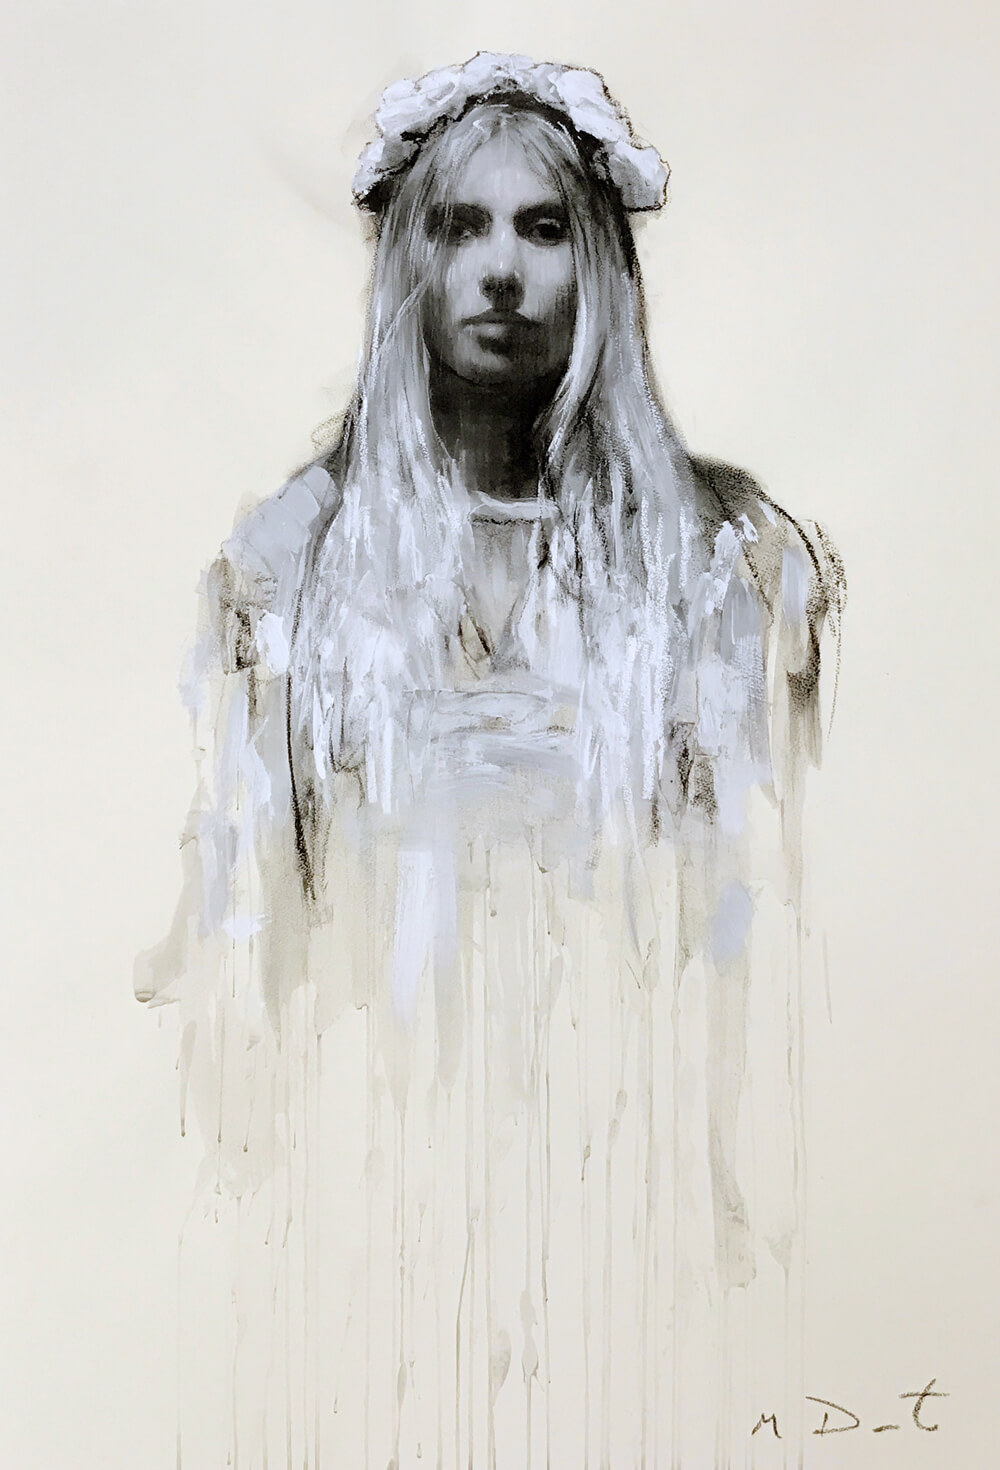 Mark Demsteader Ophelia Study on White for sale at cheshire art gallery